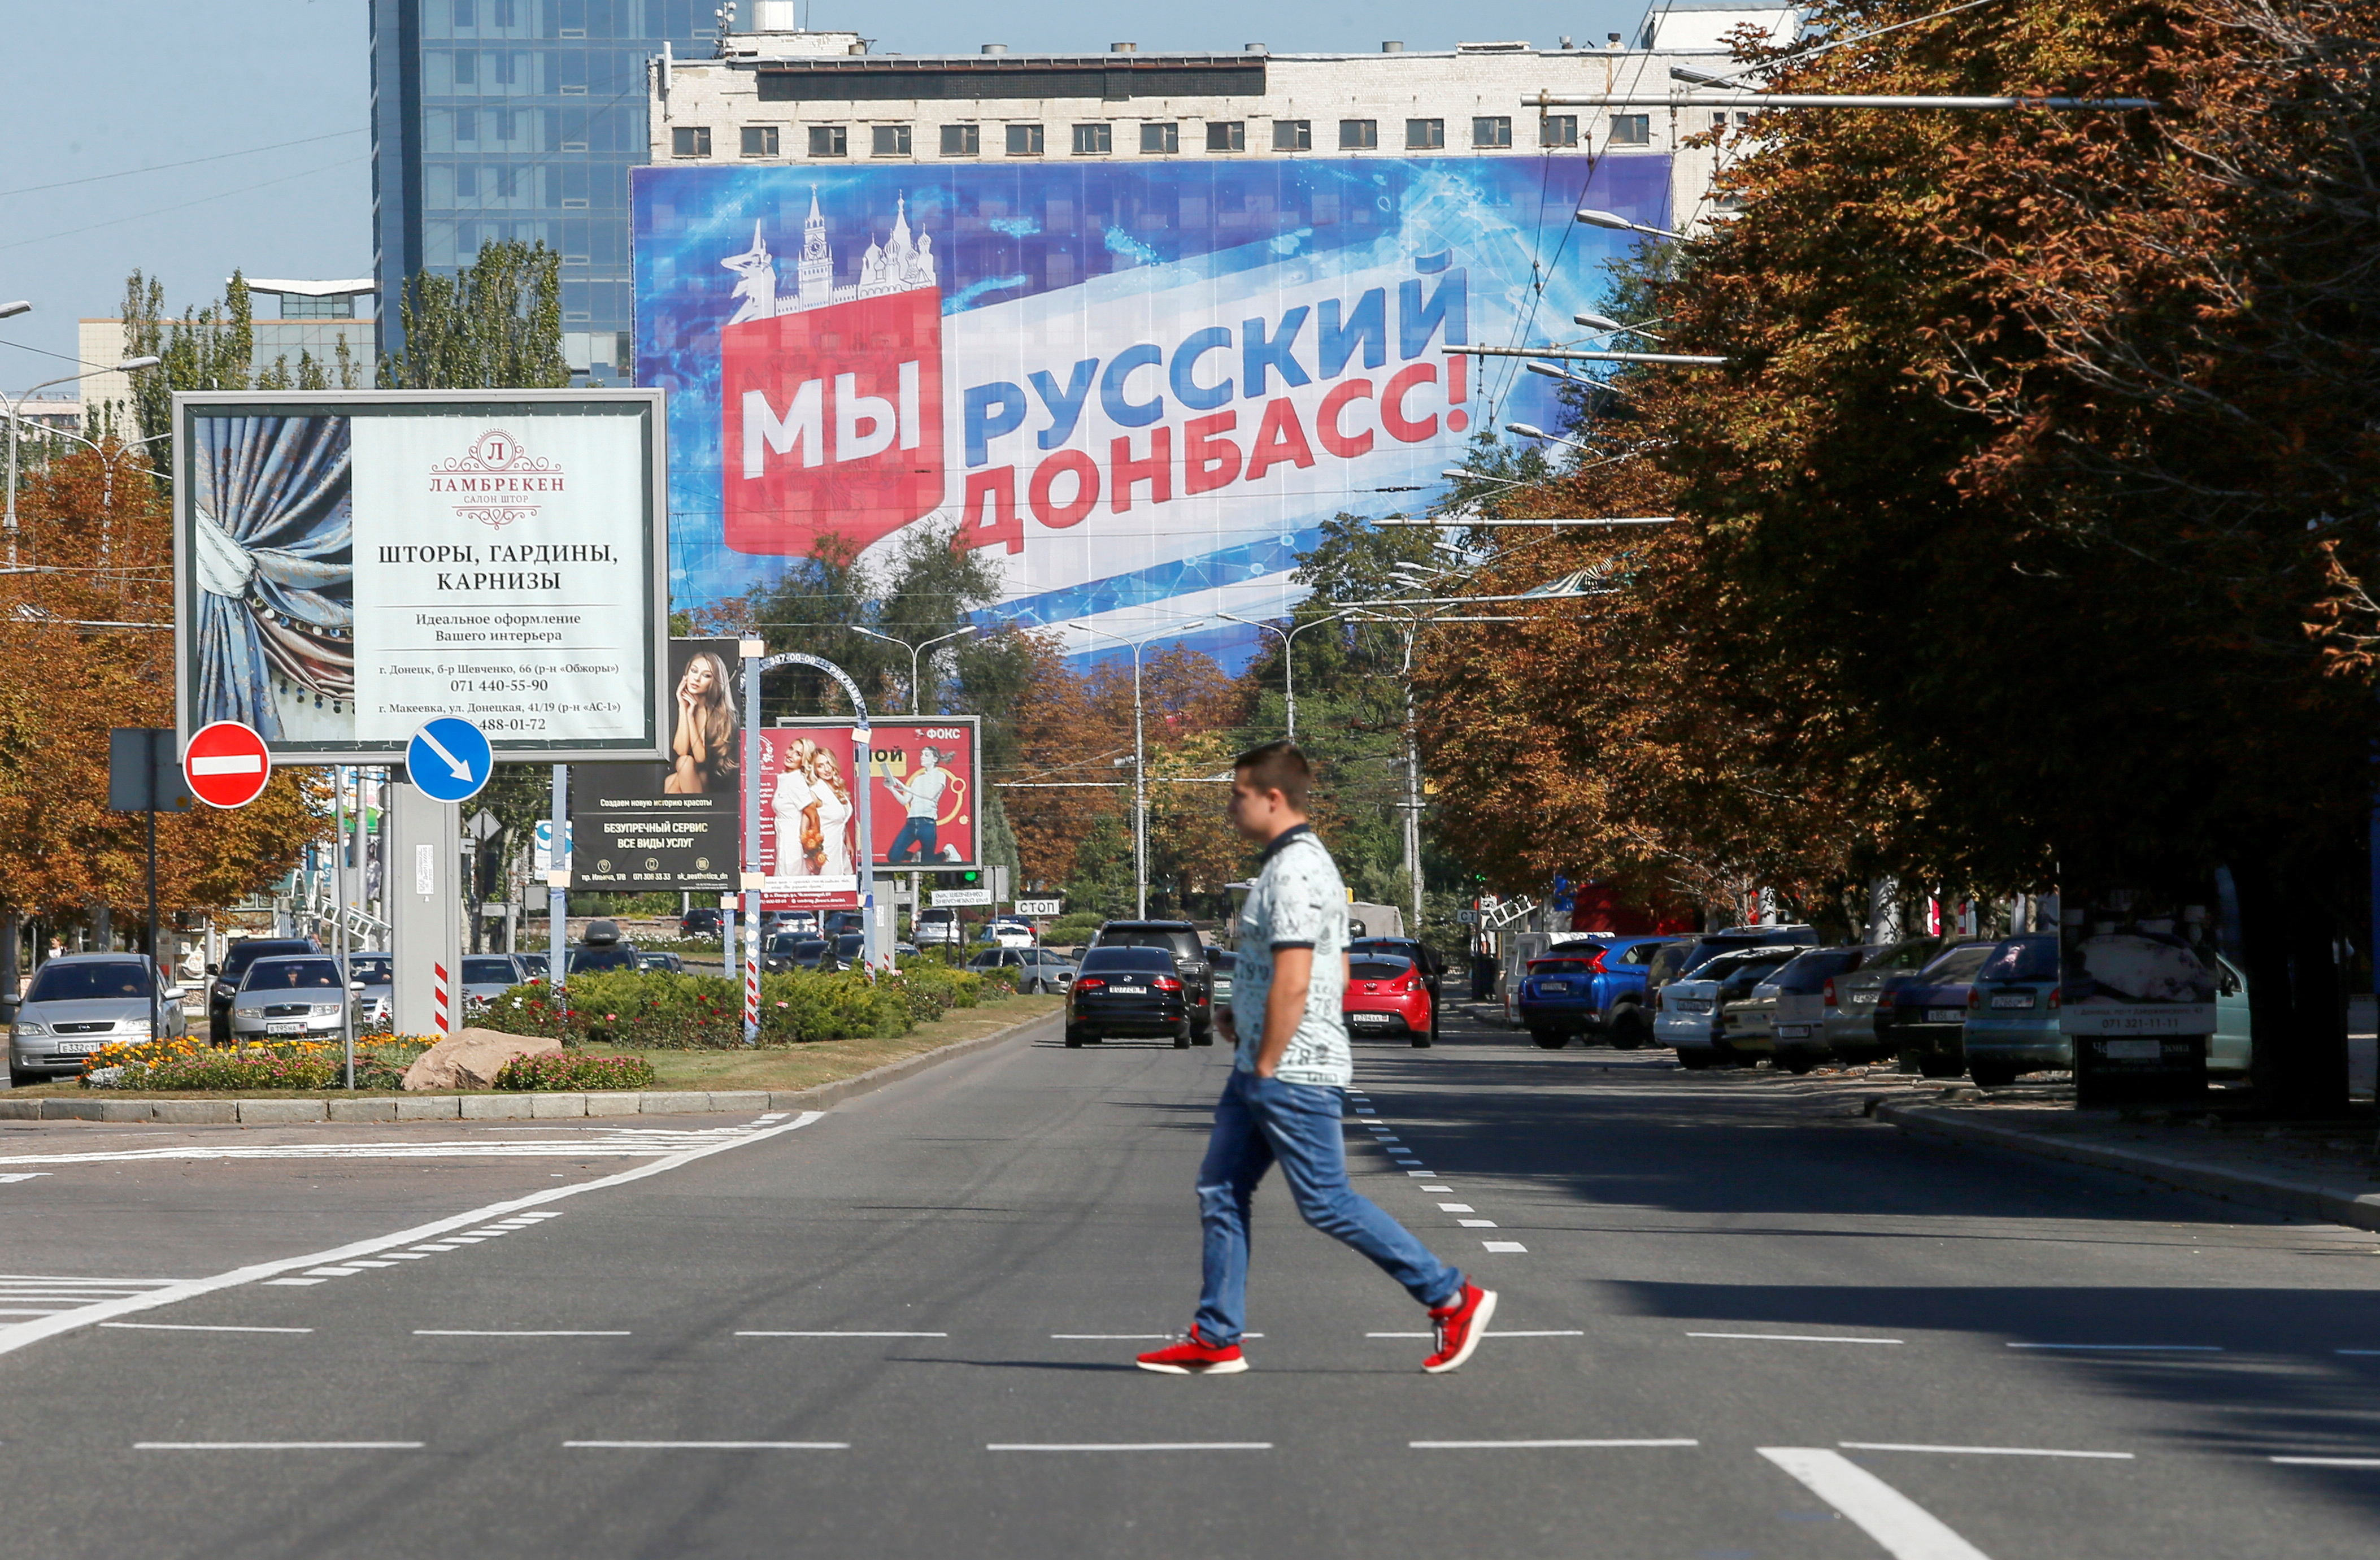 A pedestrian crosses a street near a building with a banner displaying the slogan